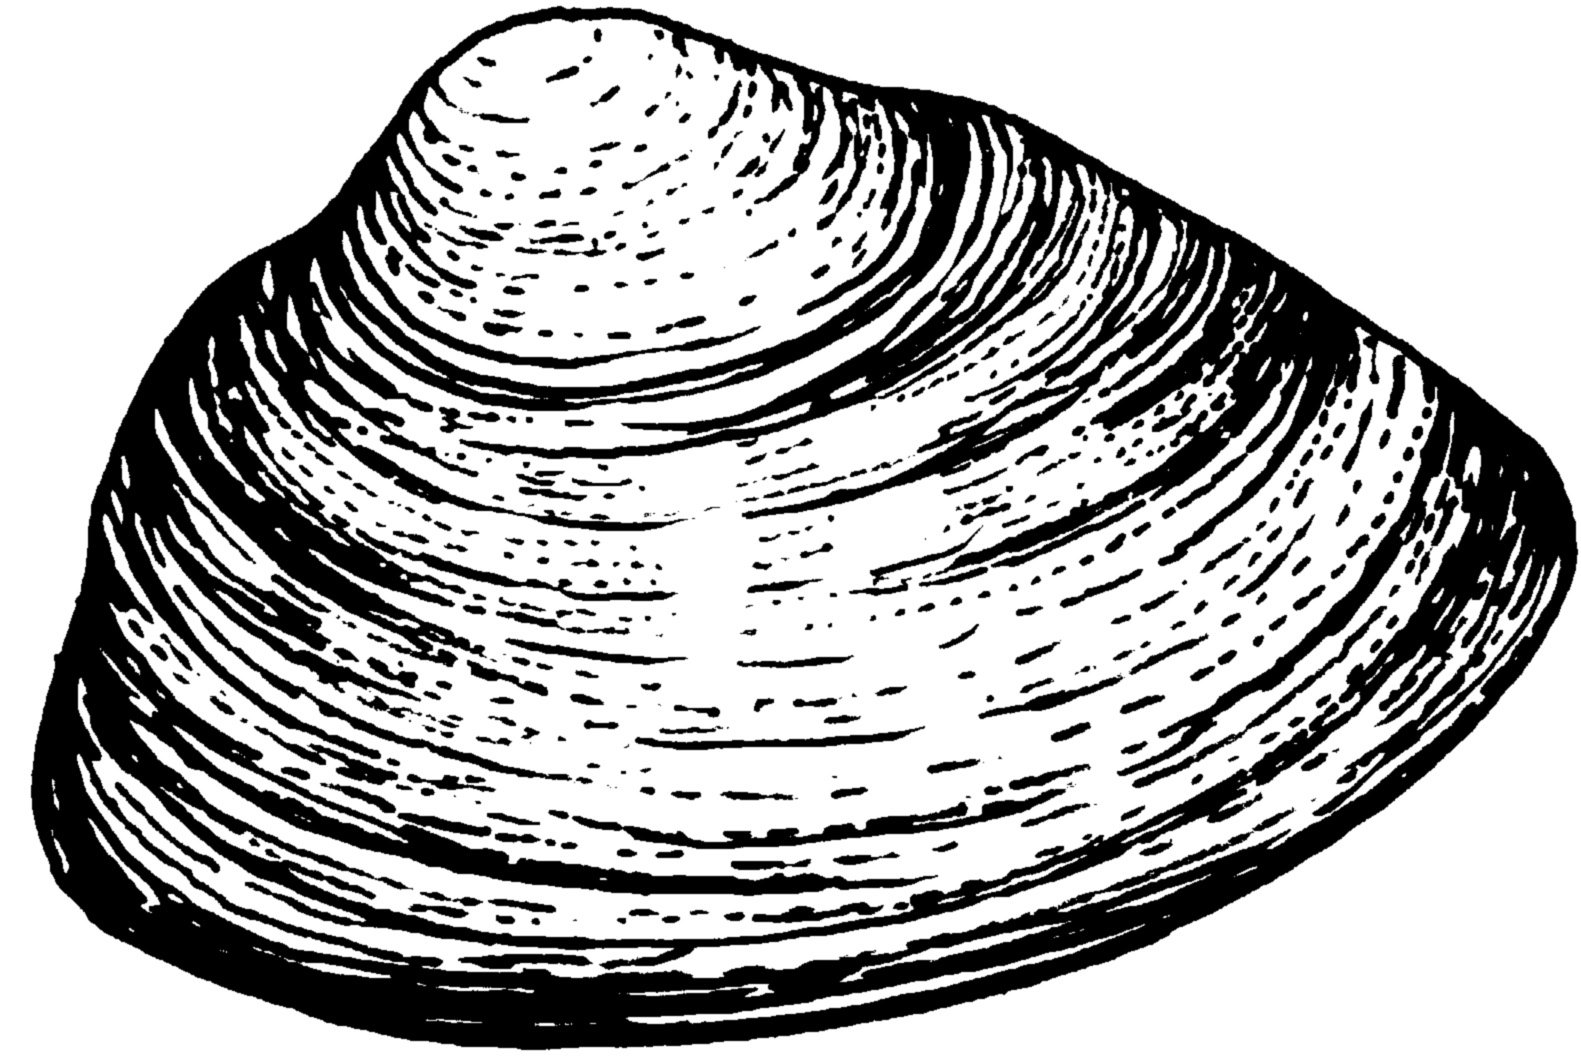 Mussel clipart #18, Download drawings